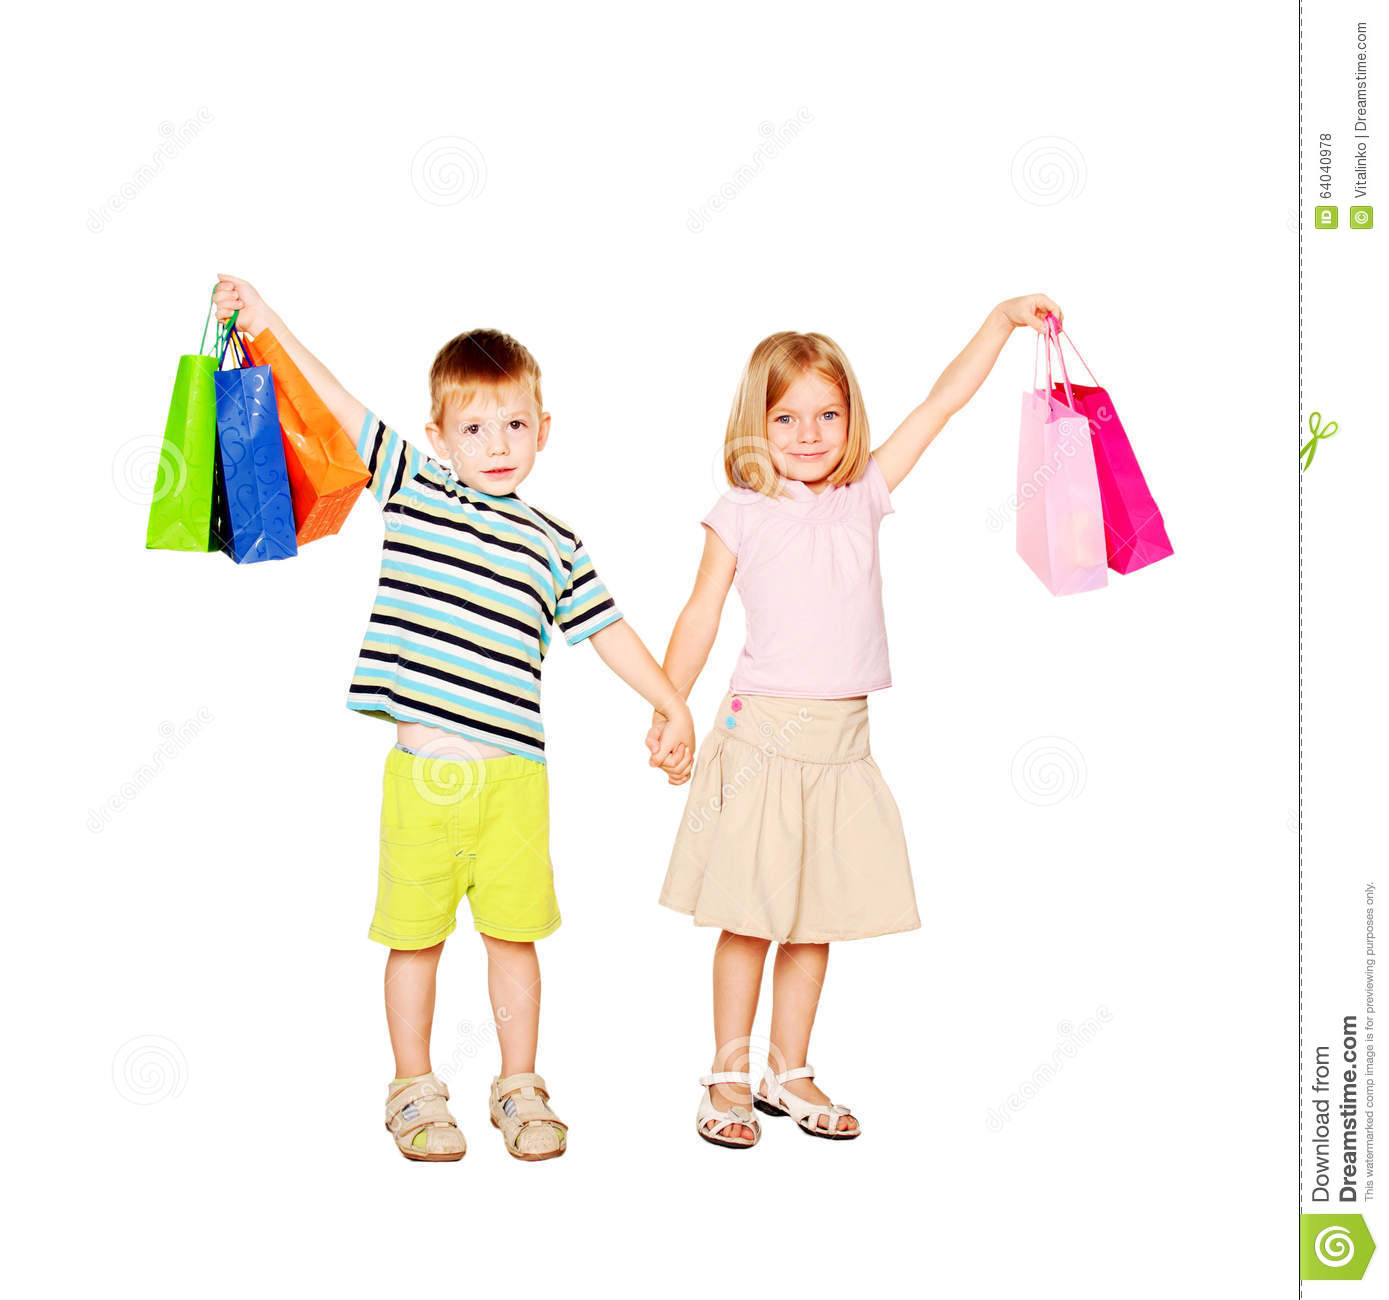 Shopping is an activity in which a customer browses the available goods or services presented by one or more retailers with the potential intent to purchase a suitable selection of them. A typology of shopper types has been developed by scholars which identifies one group of shoppers as recreational shoppers, that is, those who enjoy shopping .